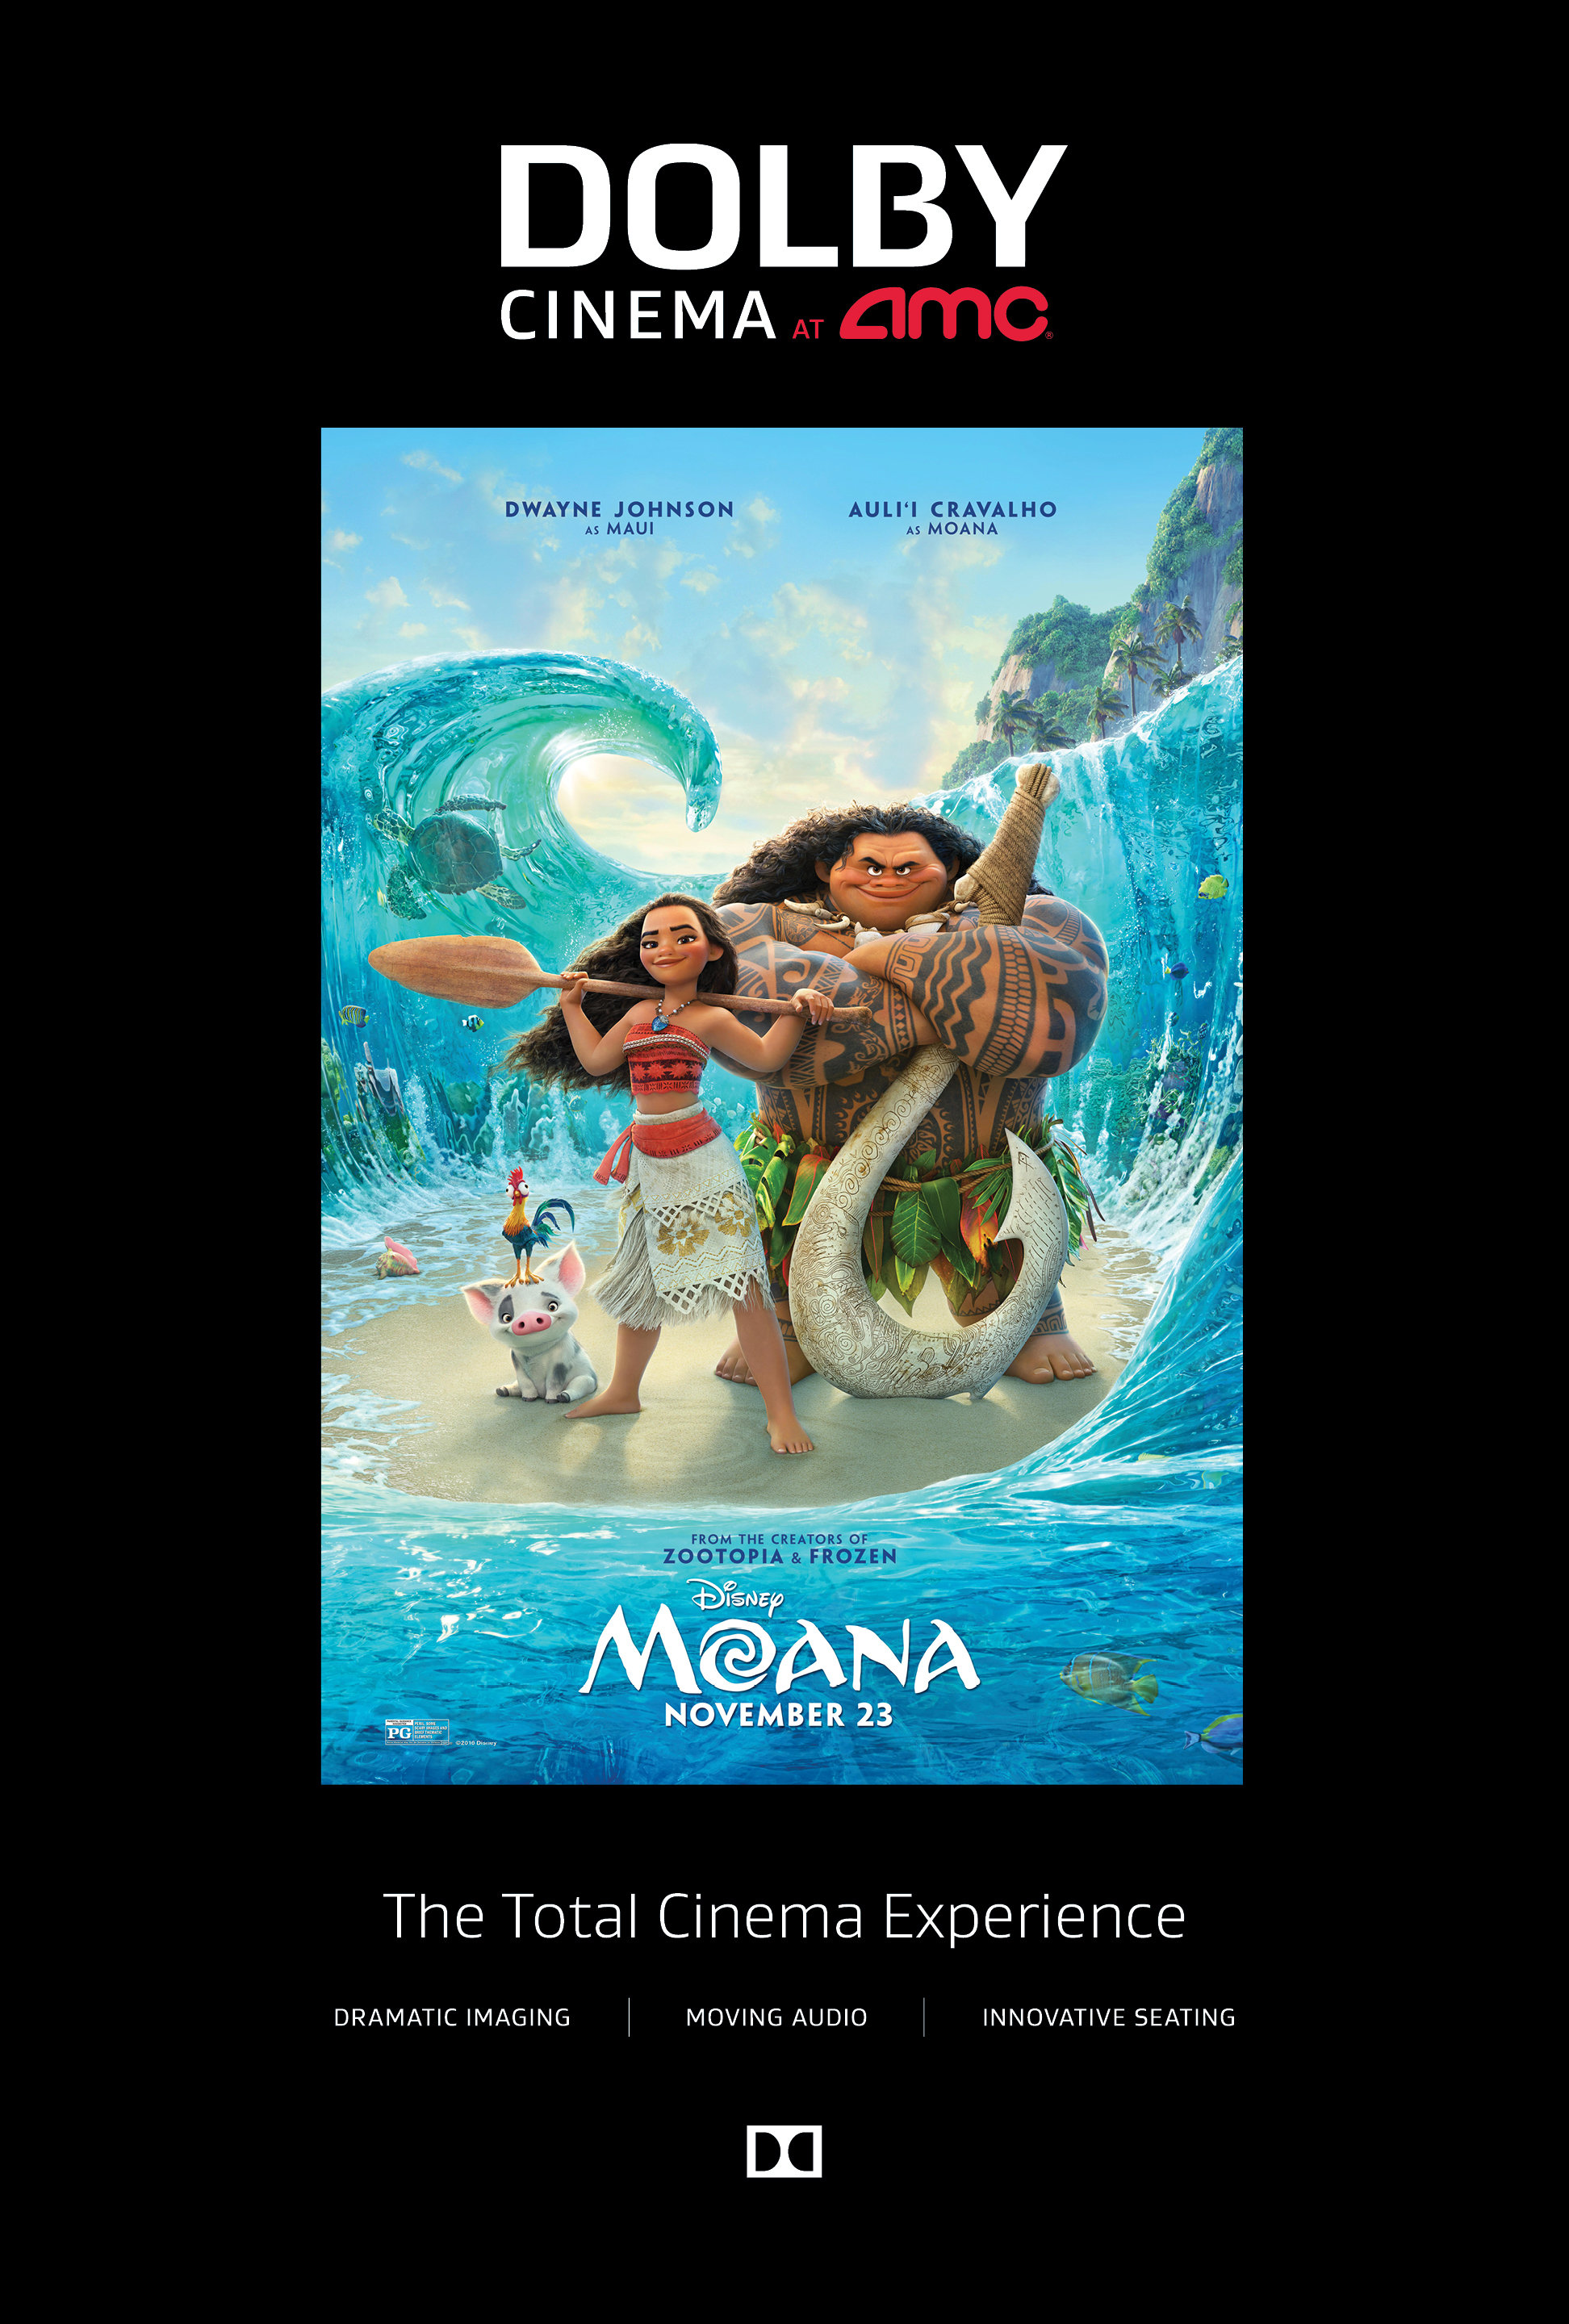 Watch Disney's Moana in Dolby Cinema at AMC Prime